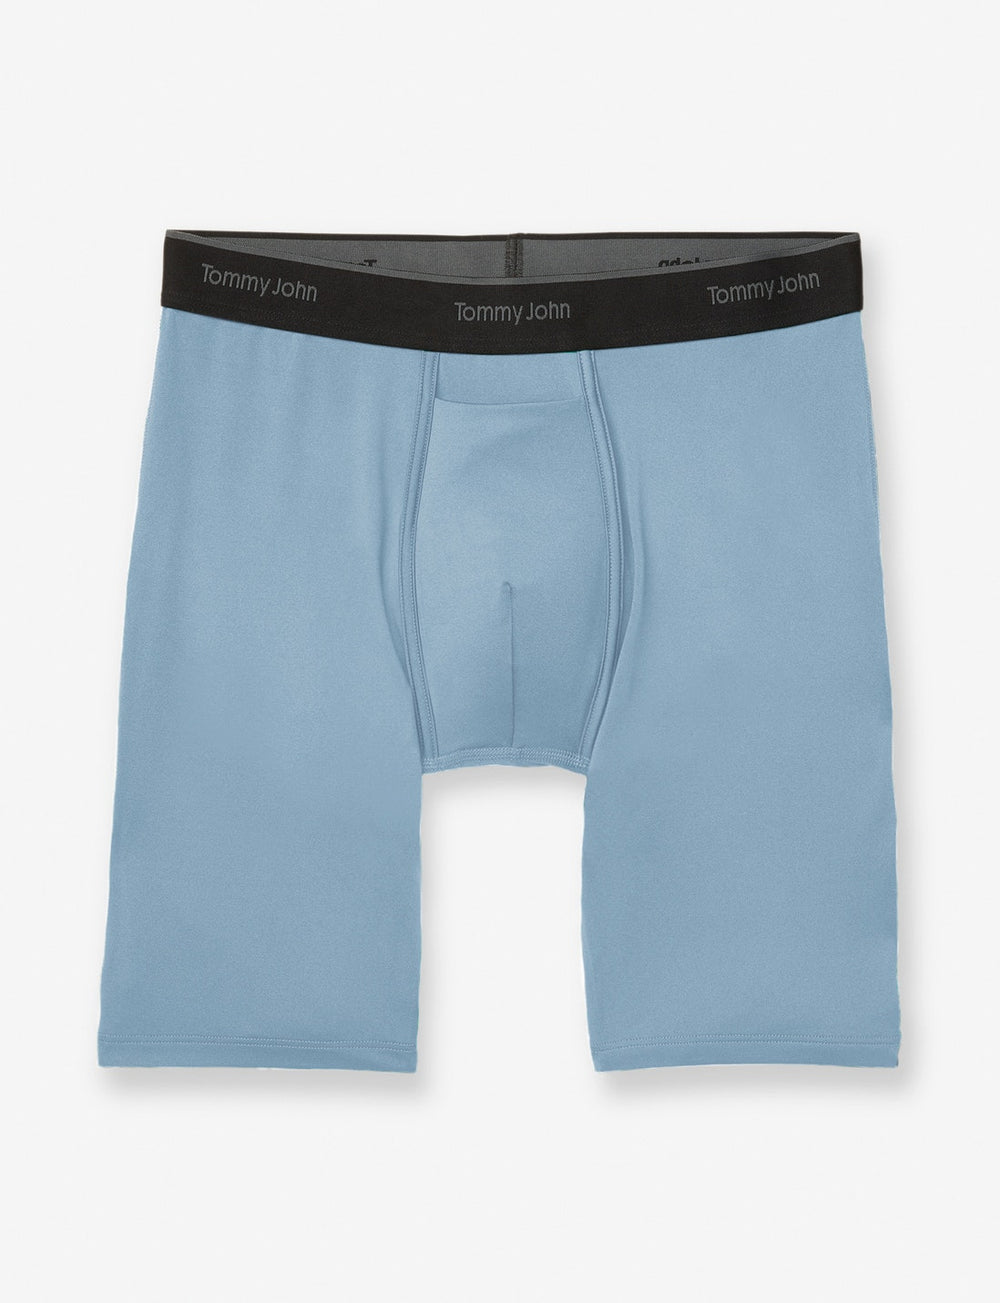 Go Anywhere® Boxer Brief Details Image